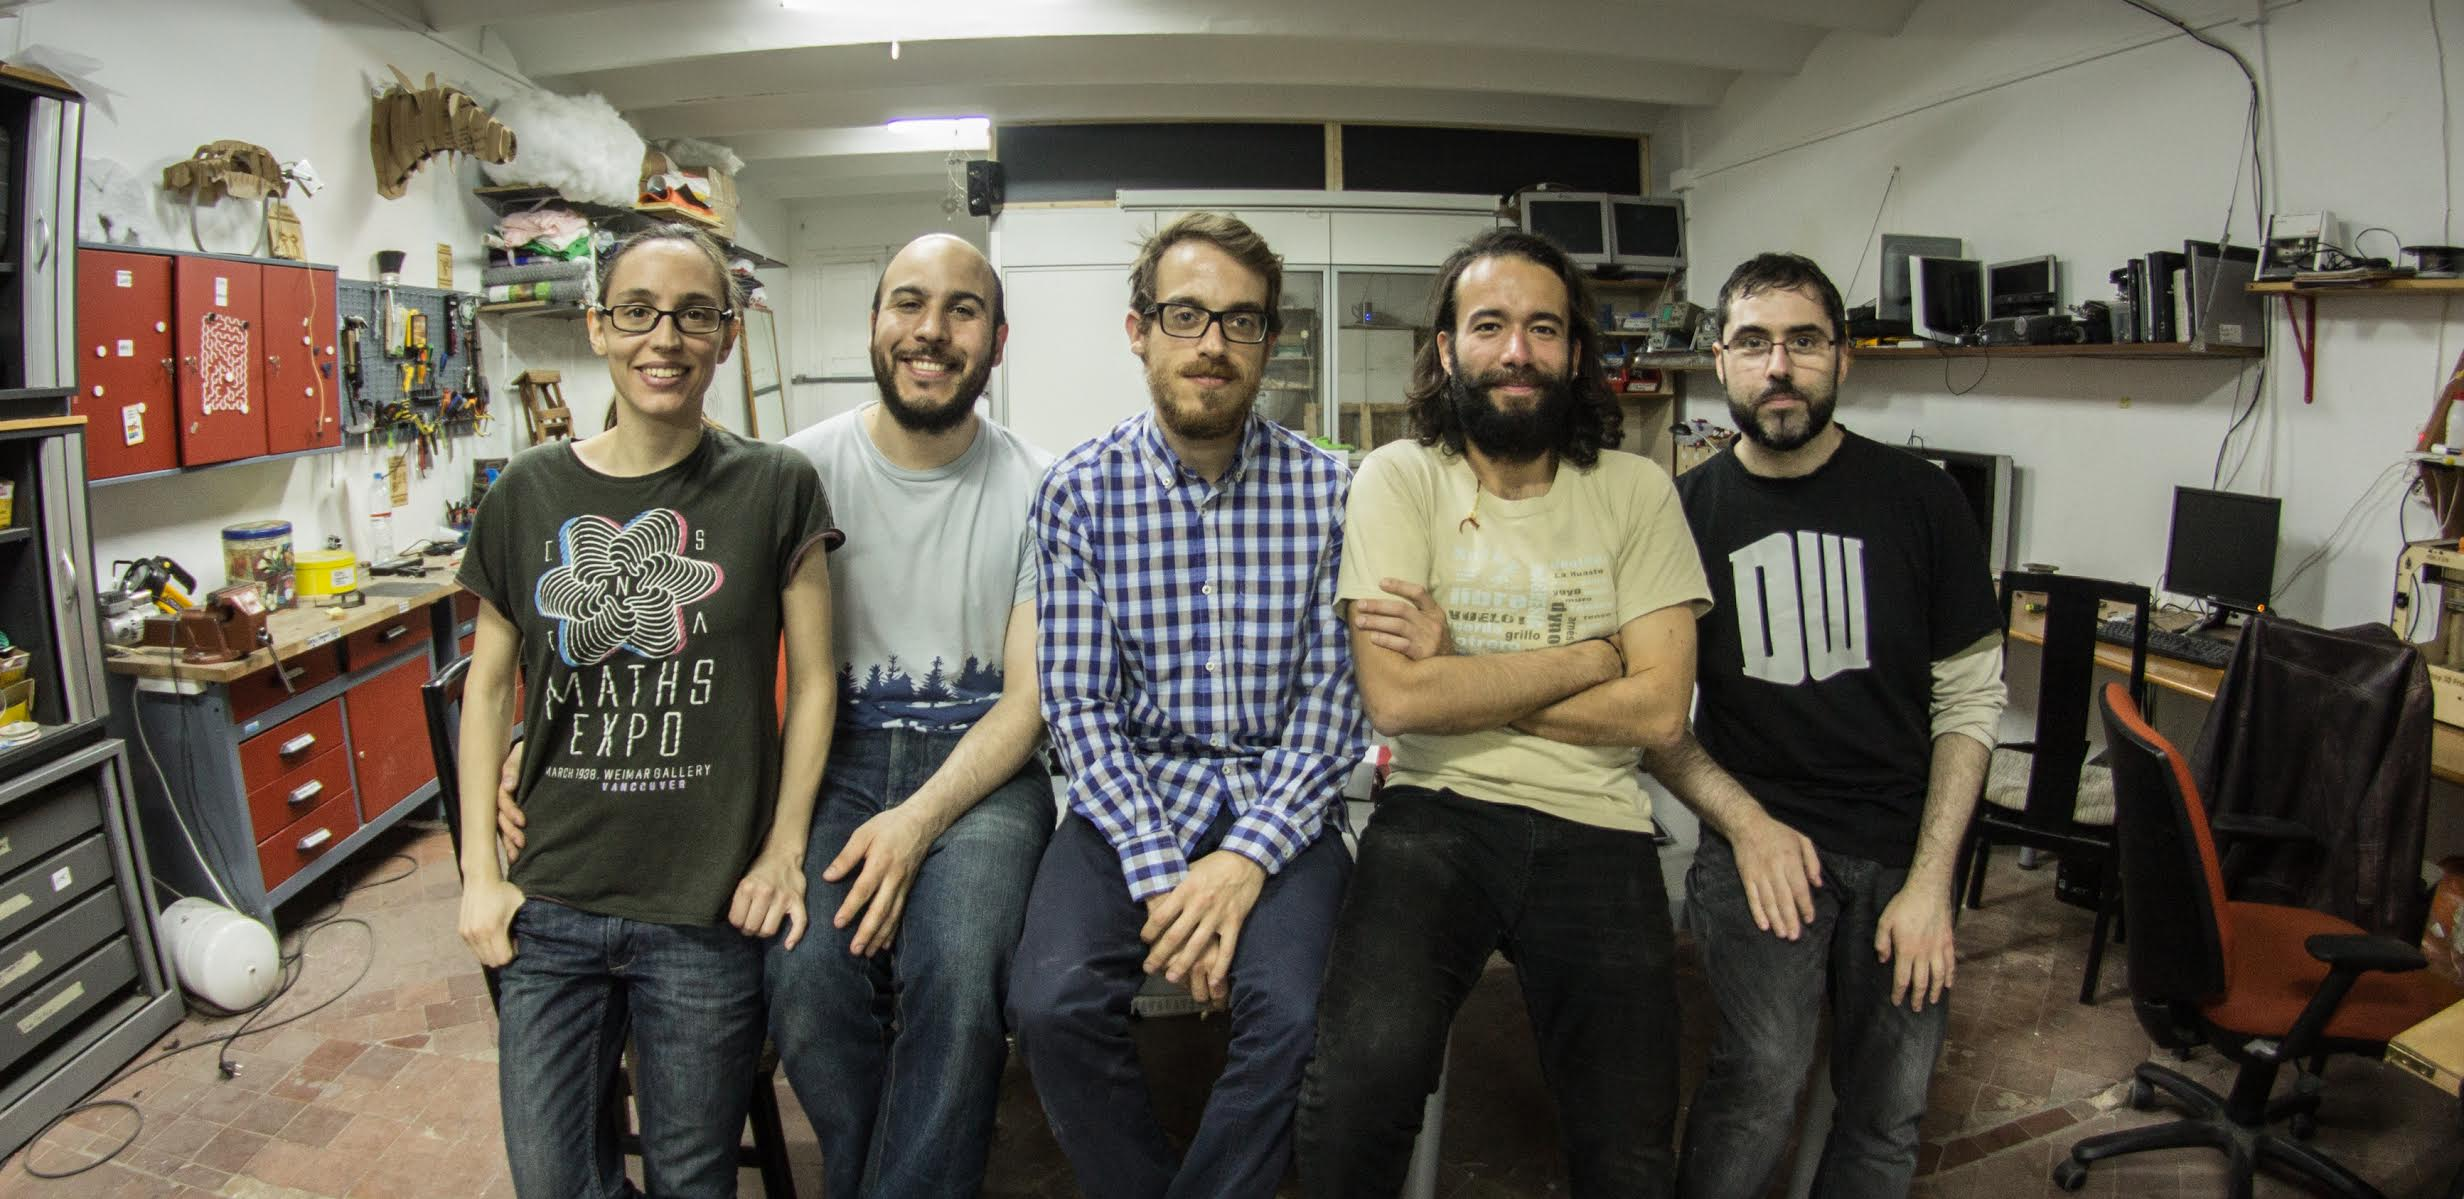 Co - Founders  (from left to right)   Nuria Conde, Esteban Martín, Alvaro Jansà, Daniel Grajales & Oscar Gallardo